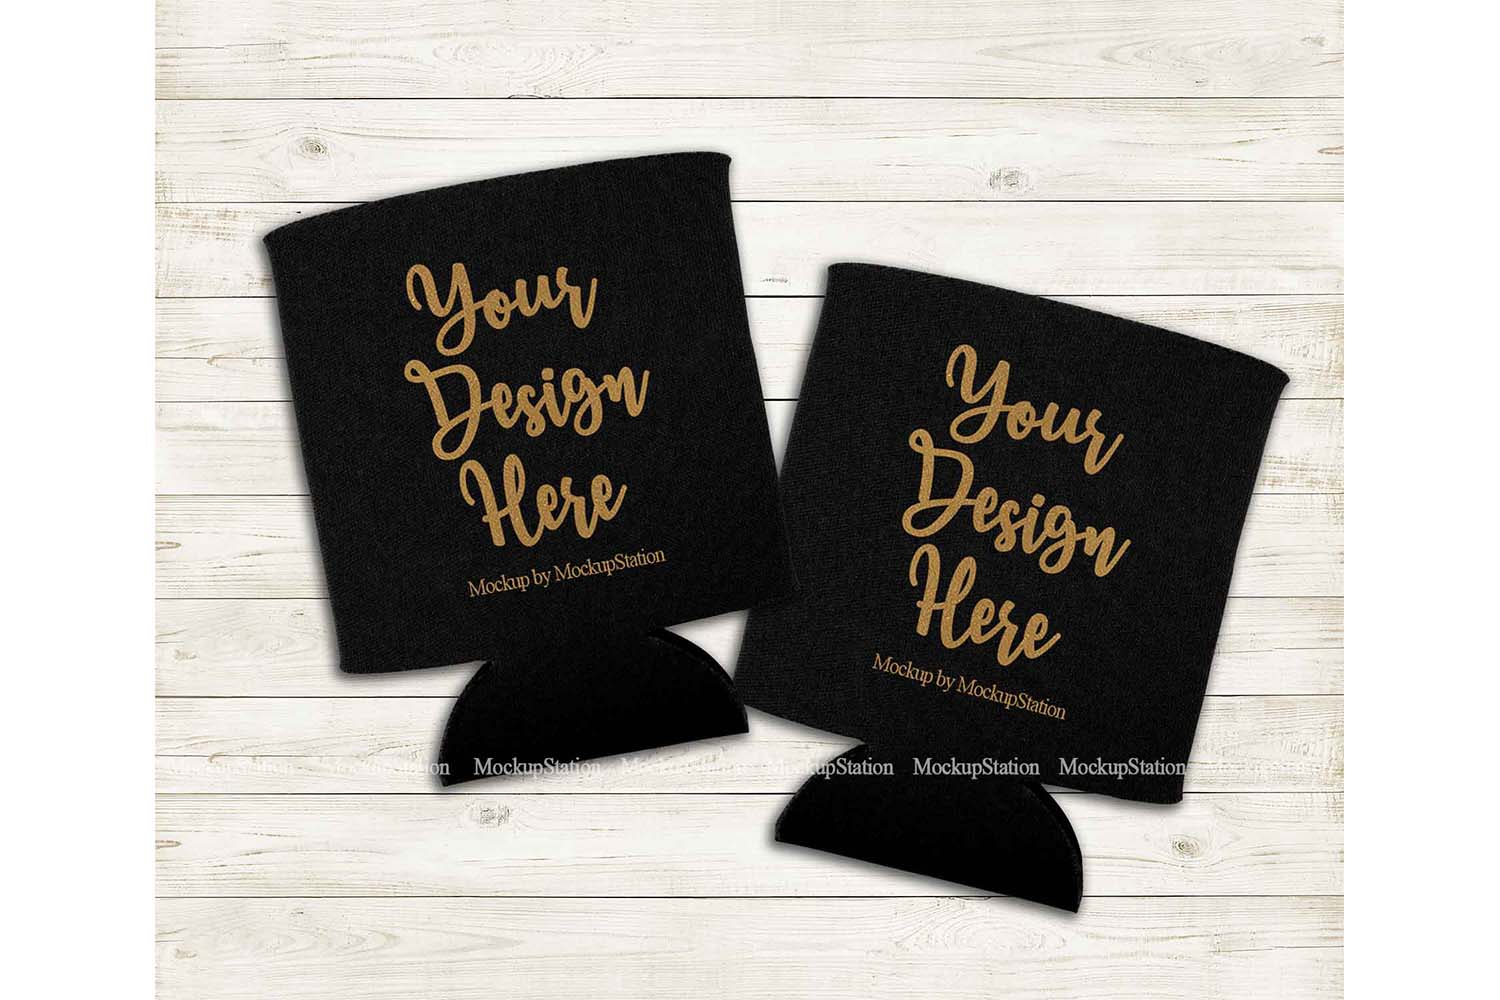 Two Can Coolers Mockup, Black Can Holder Flat Lay Mock Up example image 1